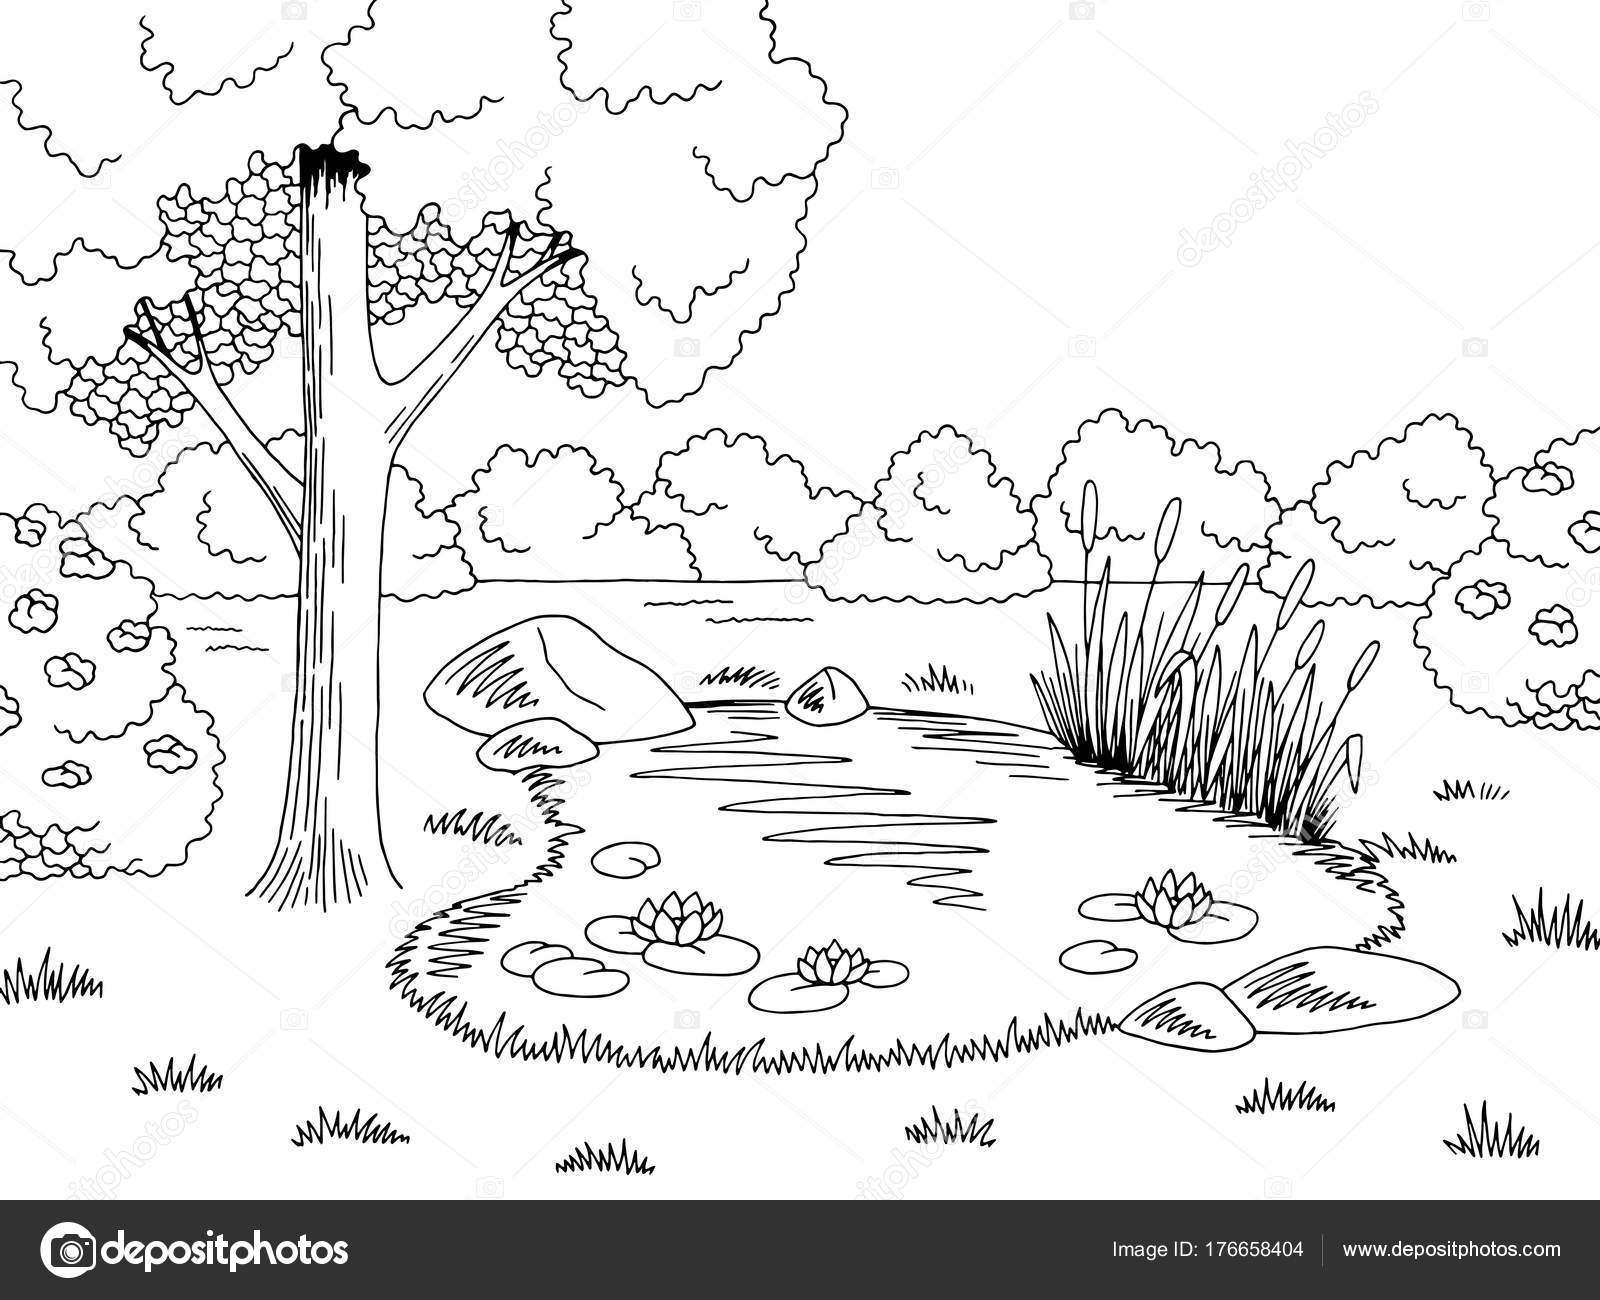 pond graphic black white lake landscape sketch illustration vector  u2014 stock vector  u00a9 aluna11